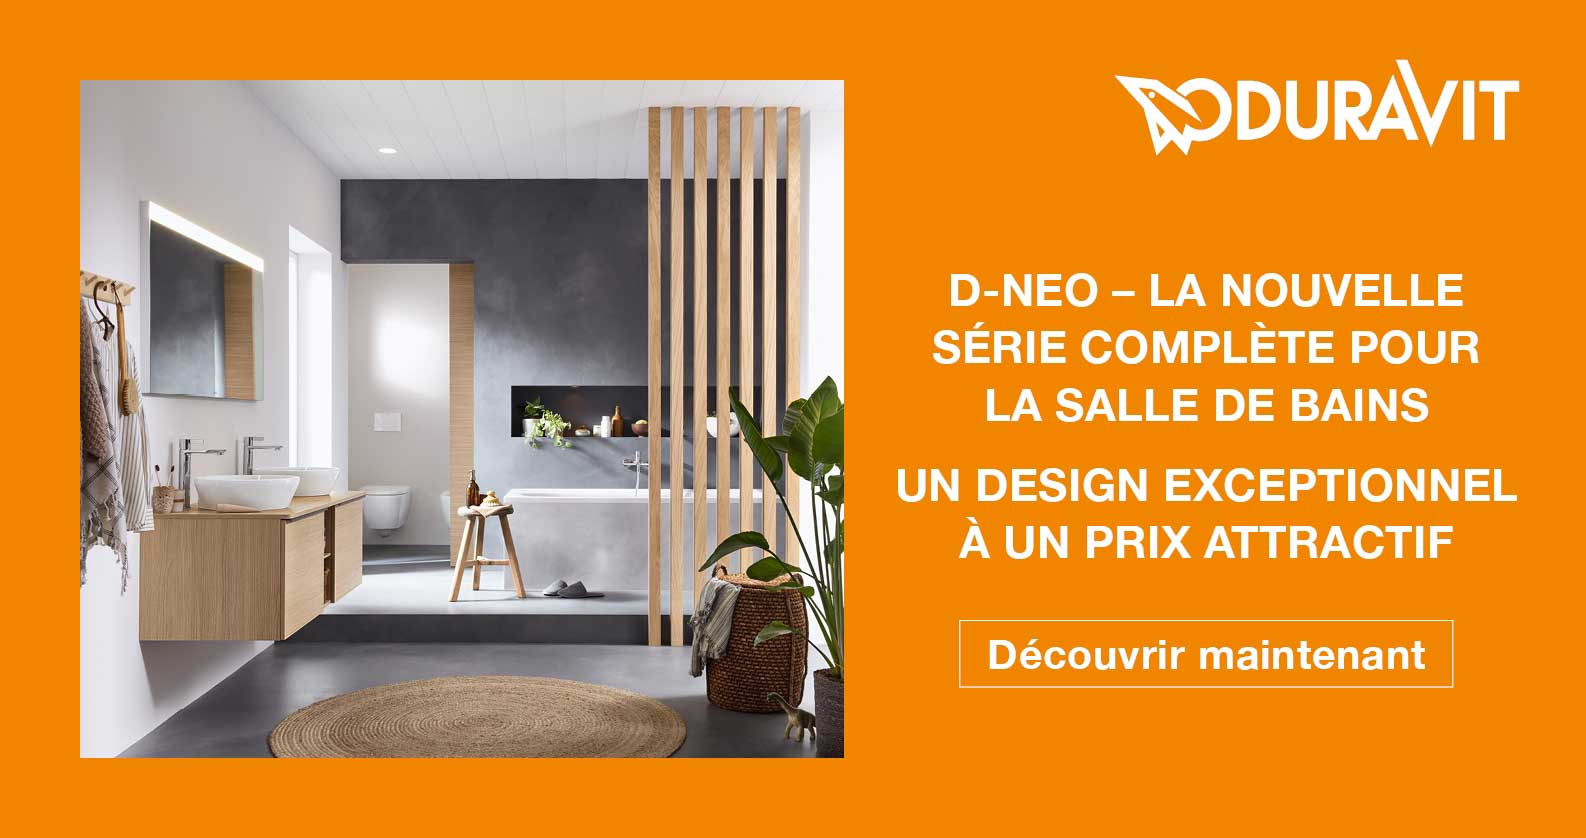 Duravit D-Neo at xTWOstore